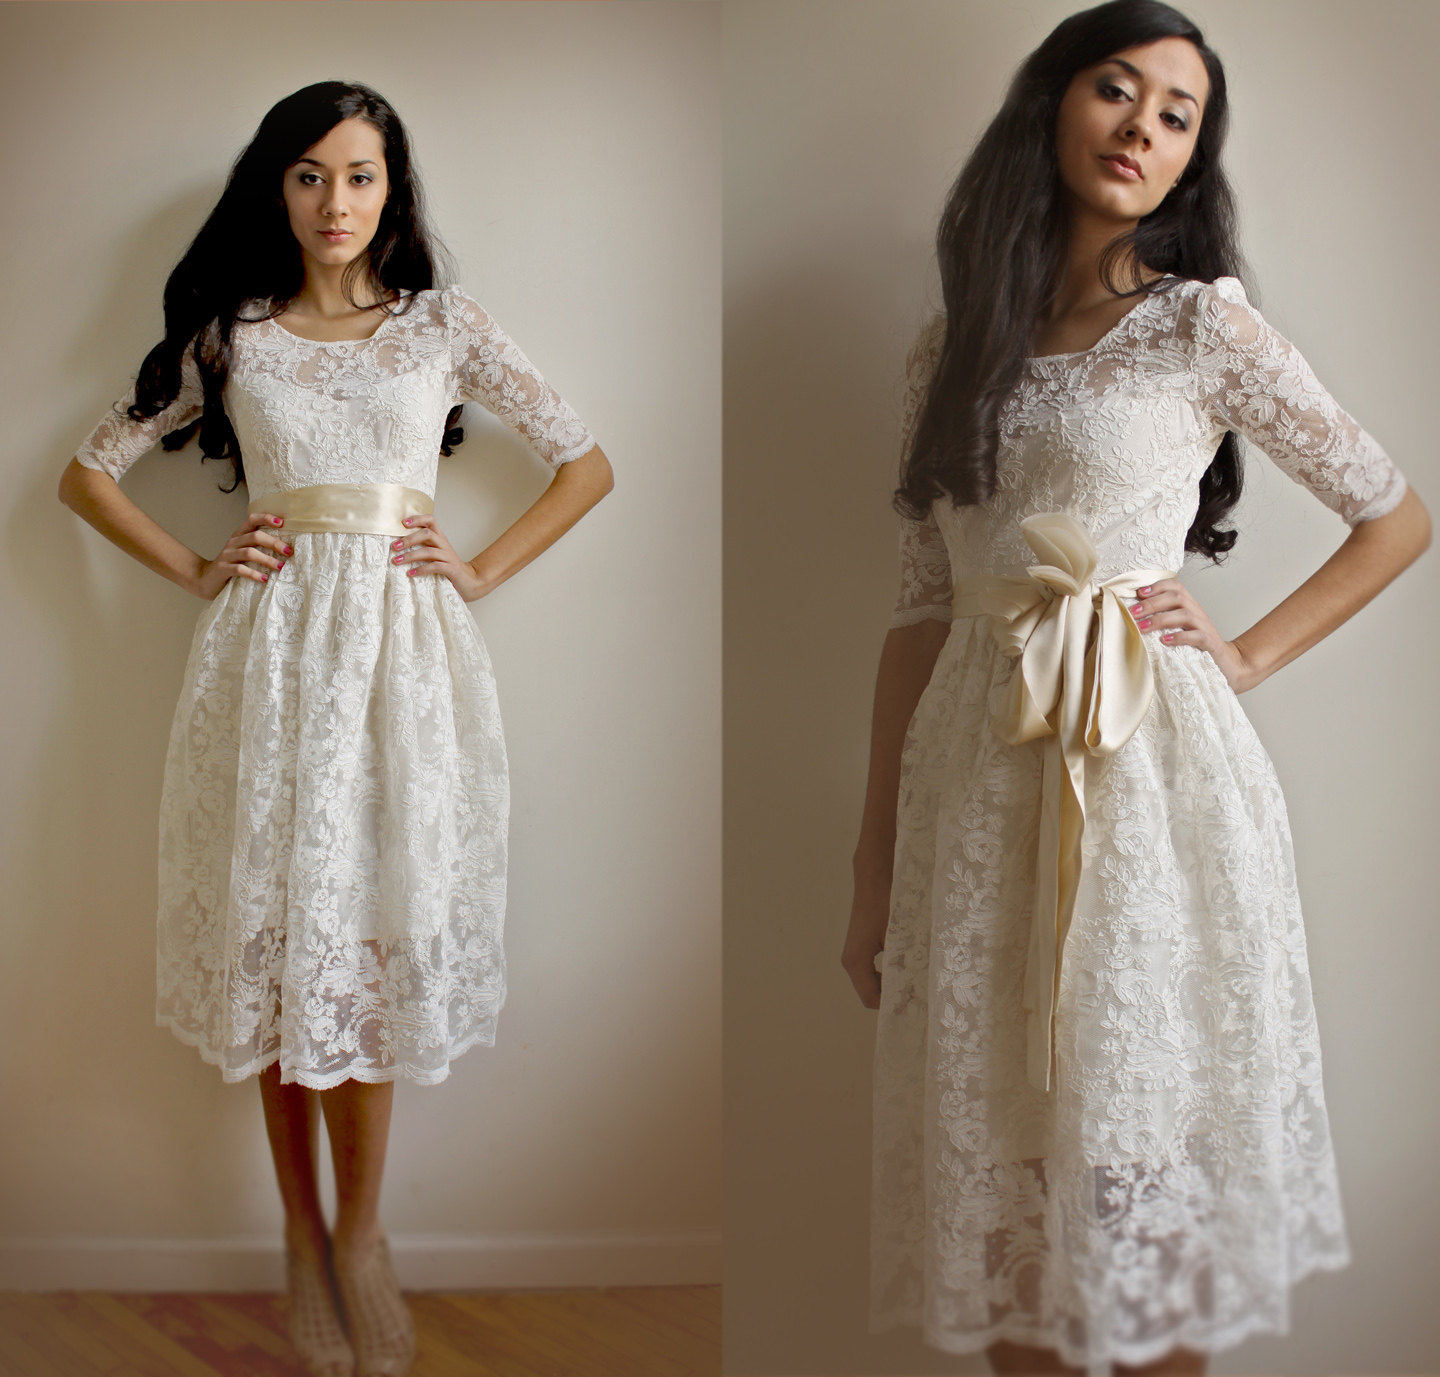 Stylish Collections of Short Lace Vintage Wedding Dresses